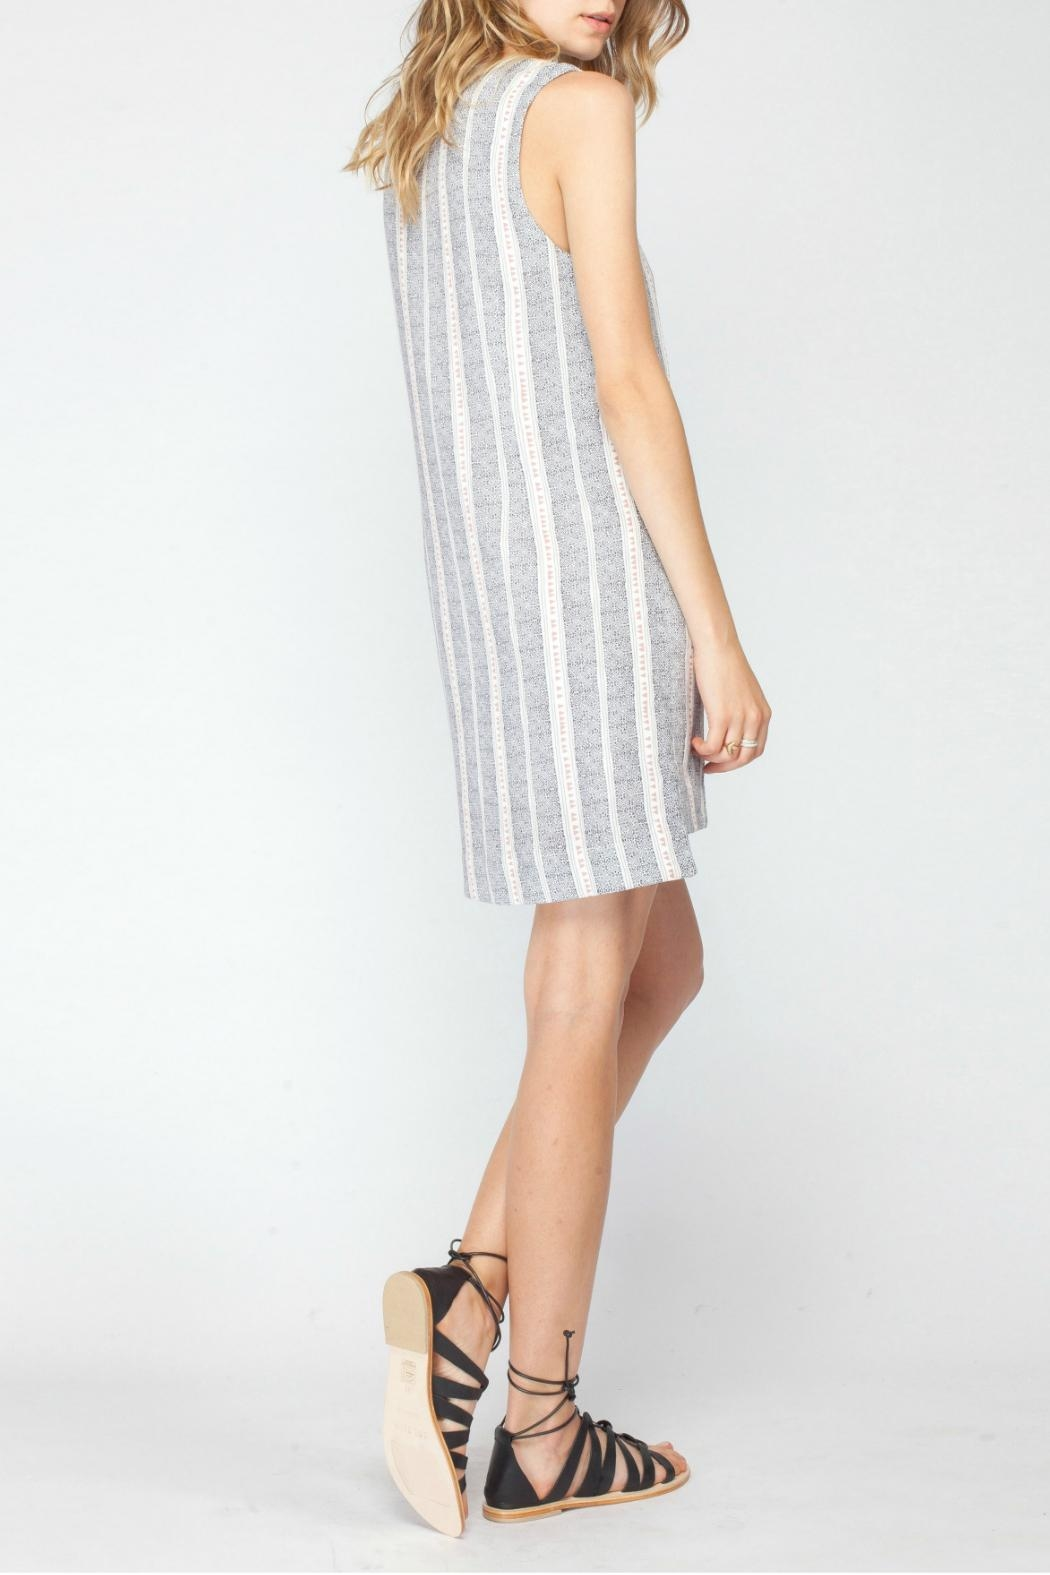 Gentle Fawn Printed Shift Dress - Back Cropped Image